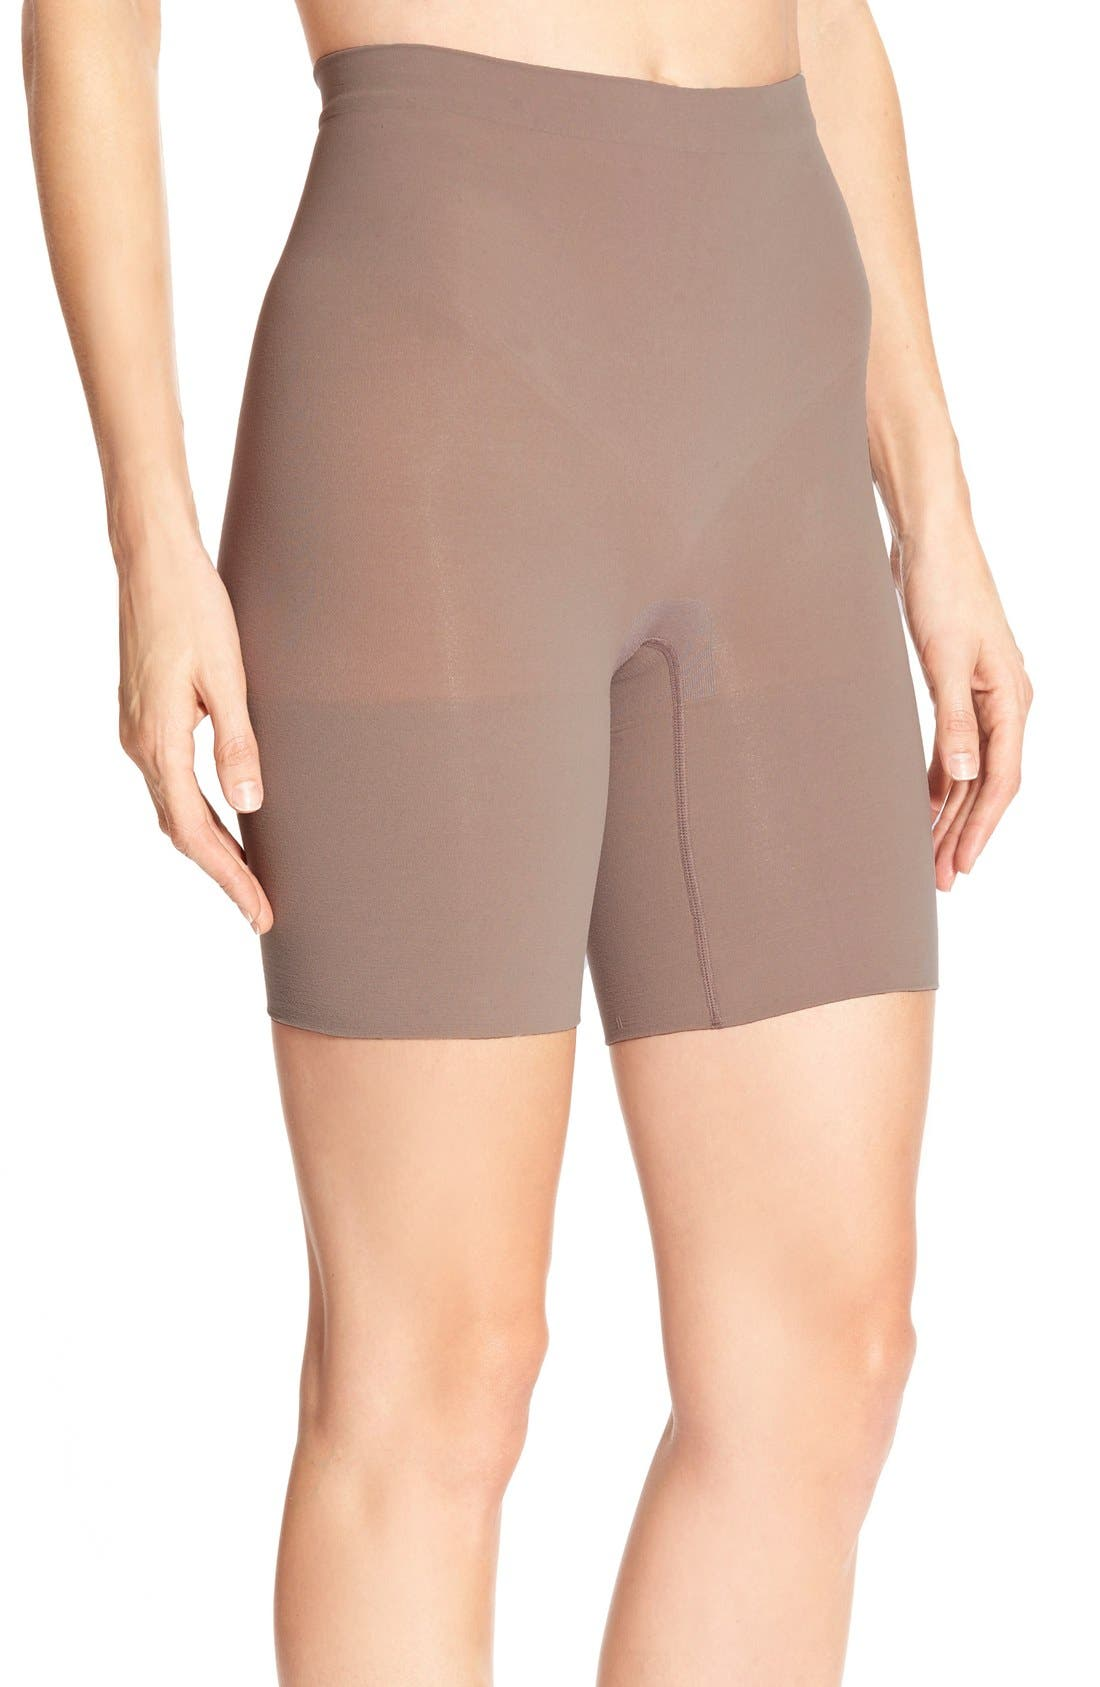 Power Short Mid Thigh Shaper,                         Main,                         color, Taupe Tone